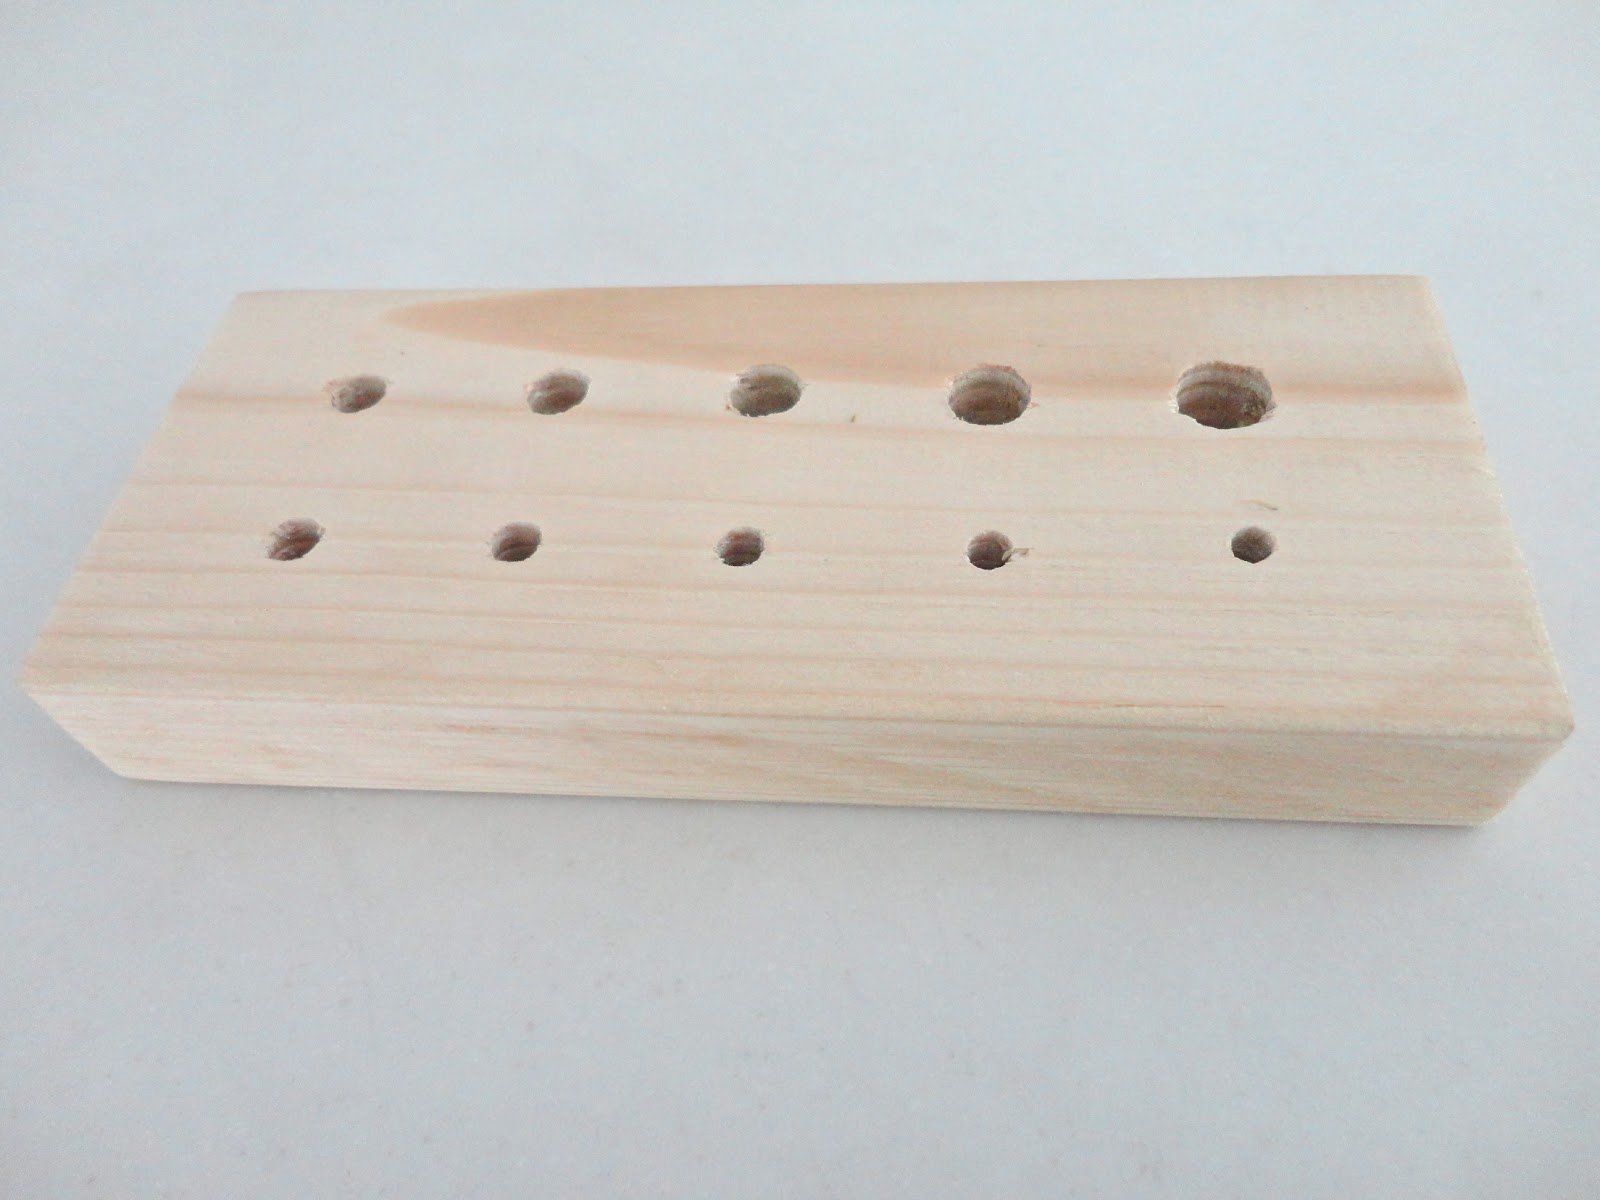 ... I \u0027bribed\u0027 my friend into making a Wooden Draw Plate for me. It is a wooden block with holes of different sizes and she has done a good job & To Bead or Not to Bead? .....: VIRGIN VIKING KNIT